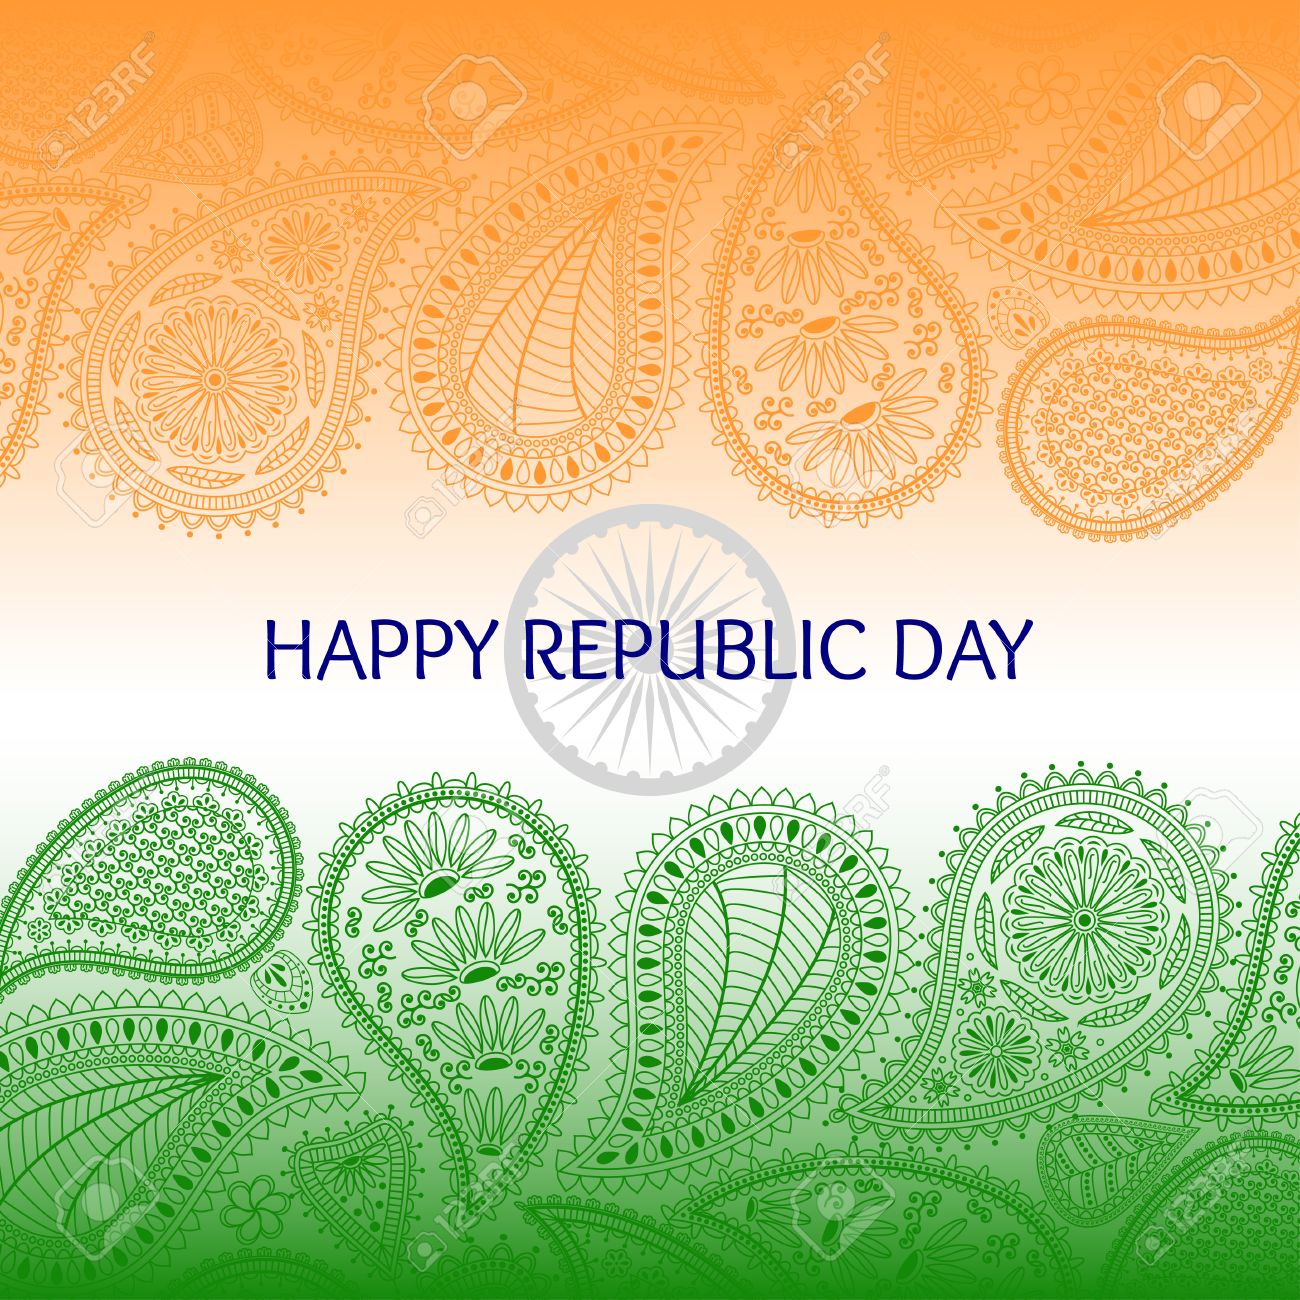 Greeting card with paisley elements text happy republic day greeting card with paisley elements text happy republic day and flag of india orange m4hsunfo